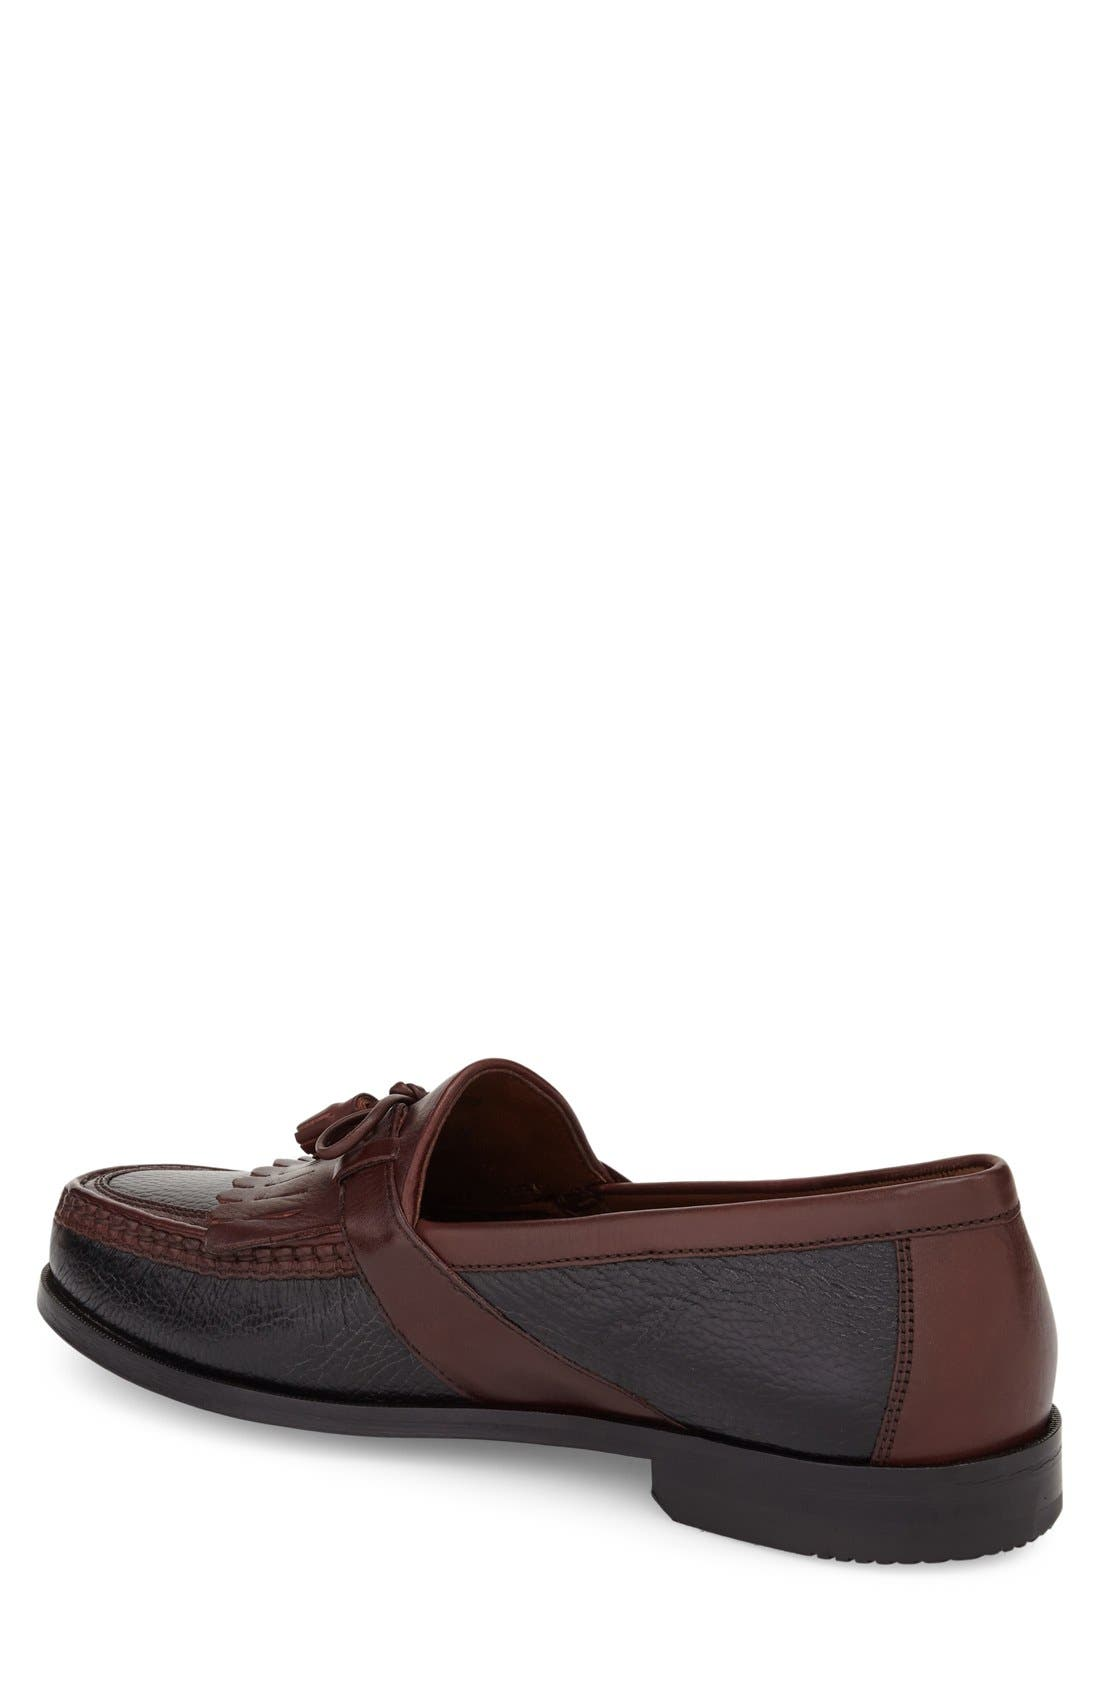 JOHNSTON & MURPHY, 'Aragon II' Loafer, Alternate thumbnail 2, color, BLACK/ BROWN LEATHER